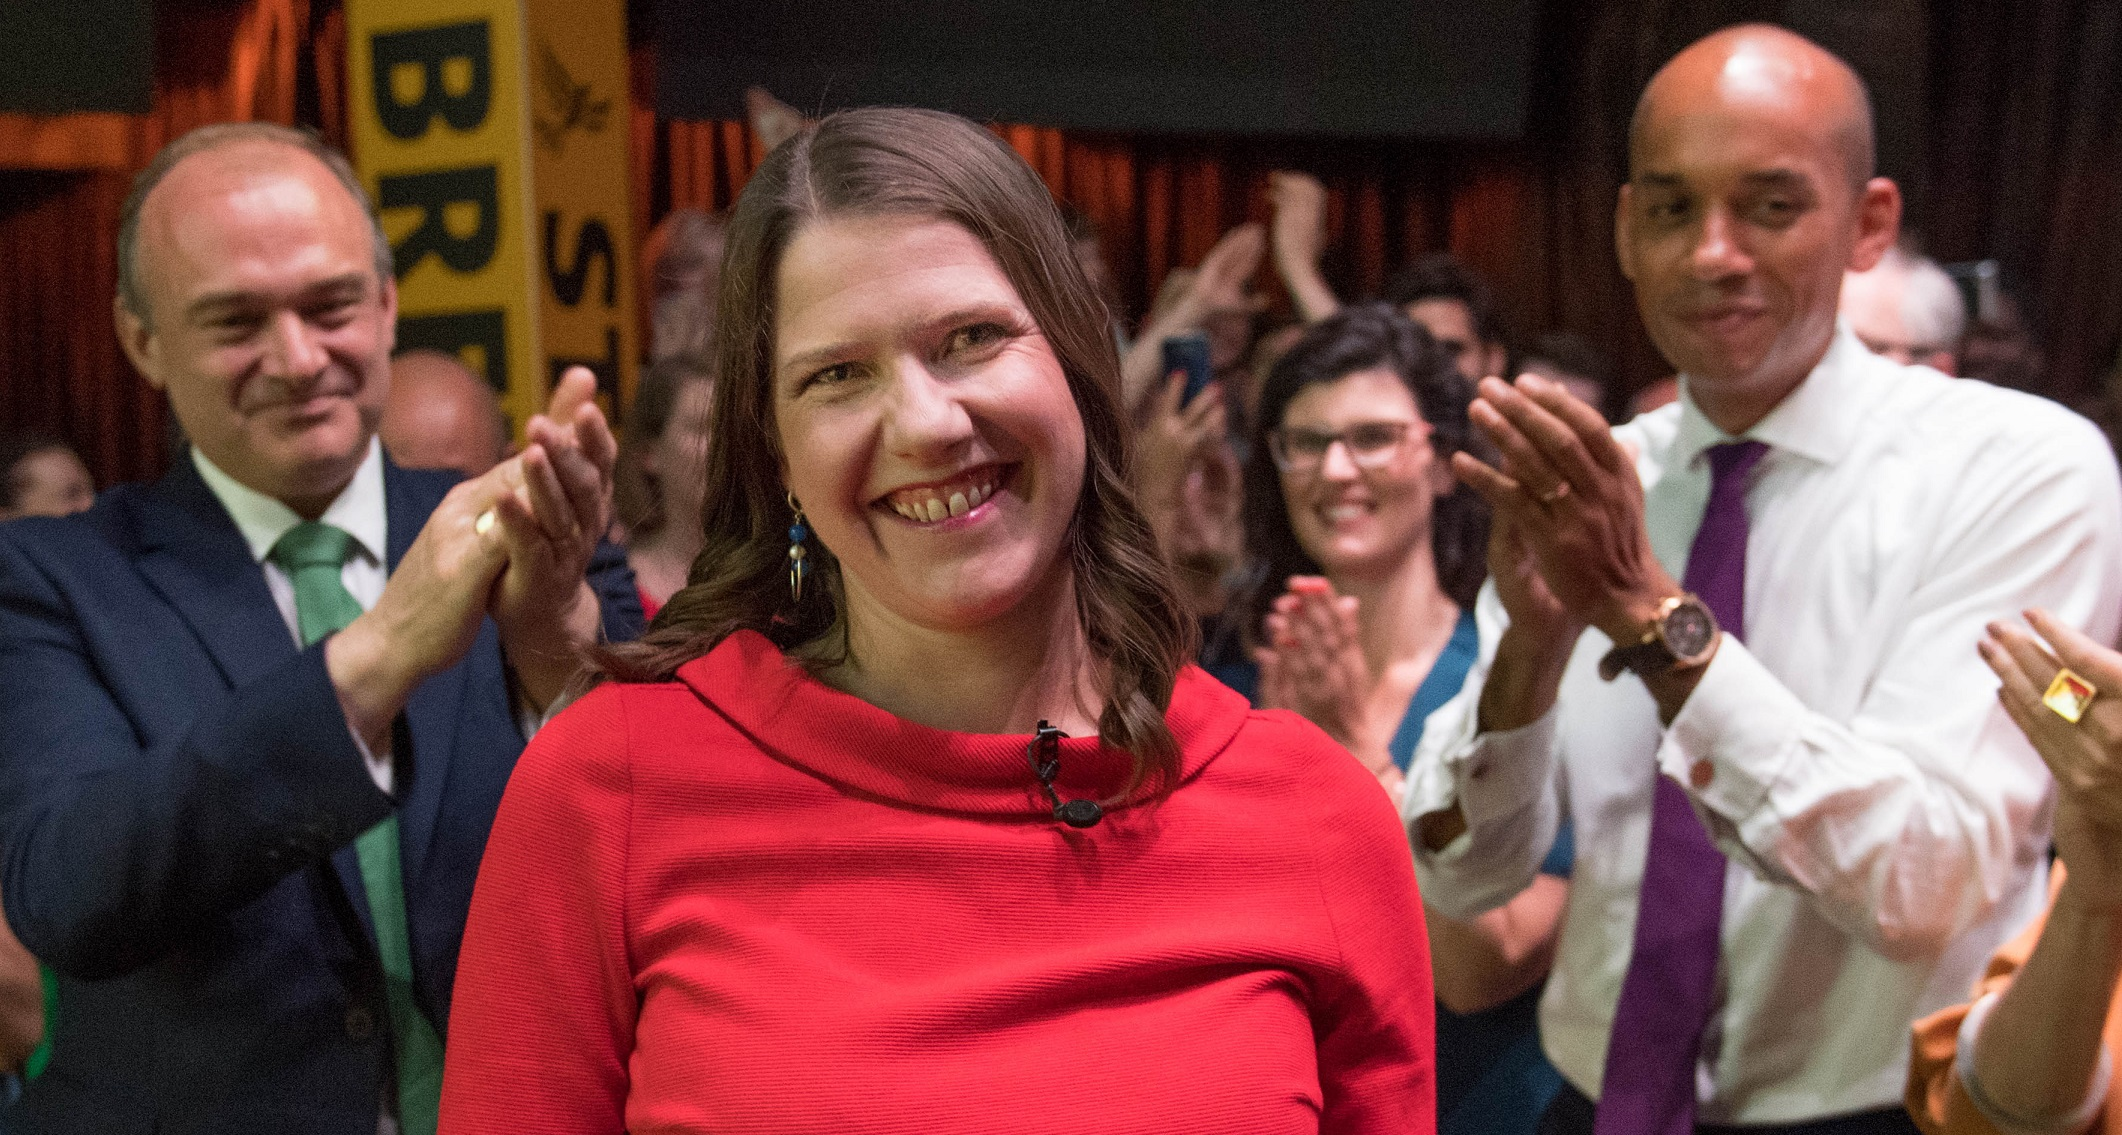 Jo Swinson at the Lib Dem event announcing her as leader